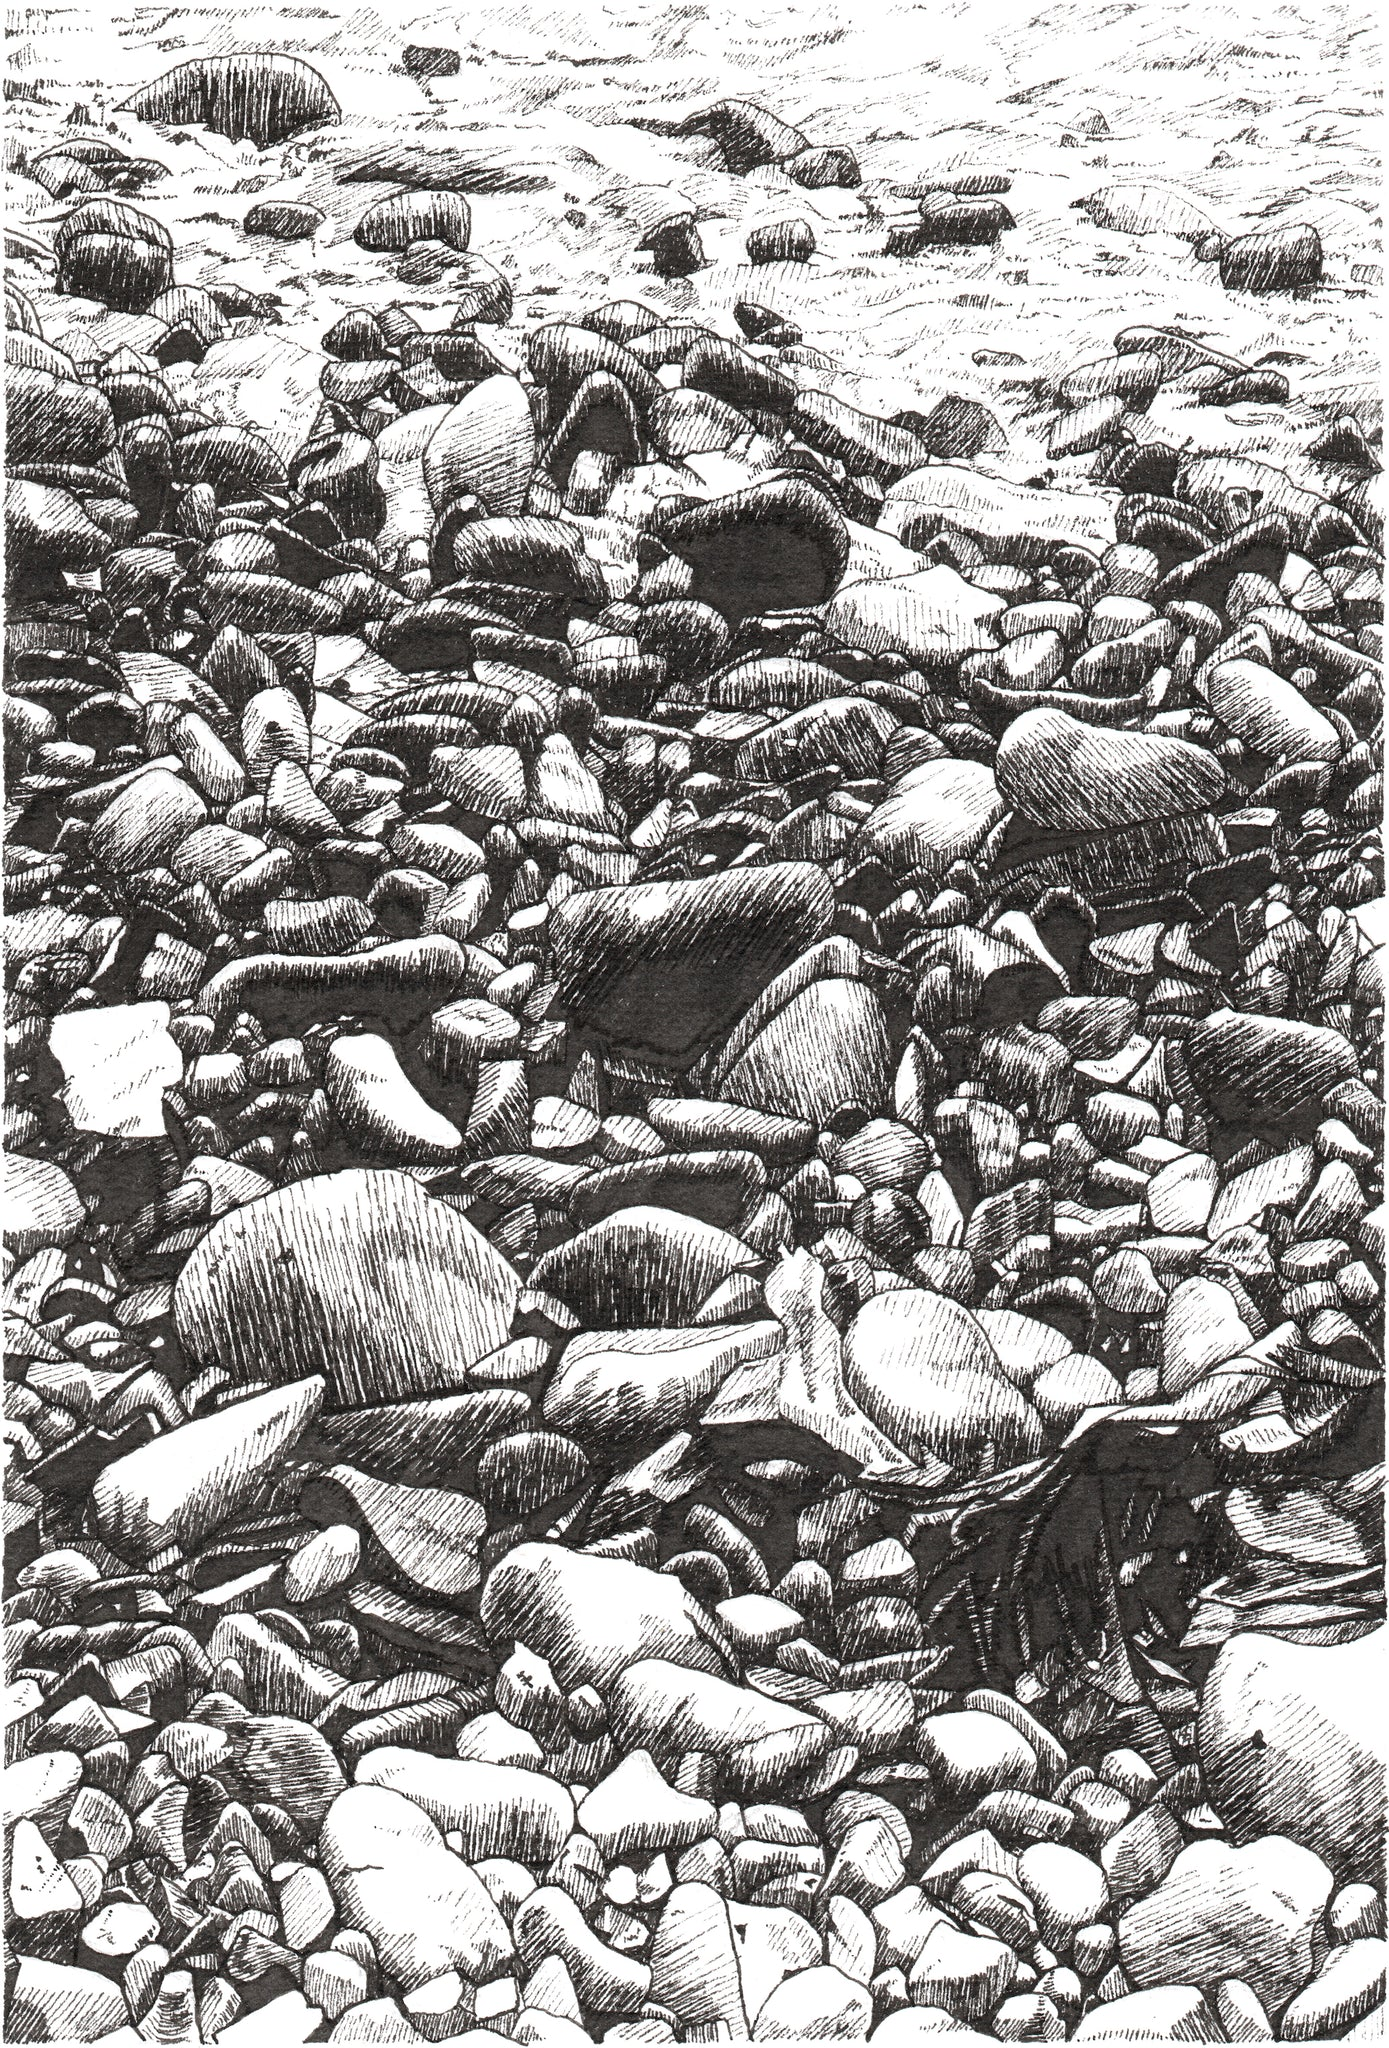 Pebbles Near Raughly Harbour - Limited Edition Print - Contemporary art from Ireland. Paintings & prints by Irish seascape & landscape artist Kevin Lowery.